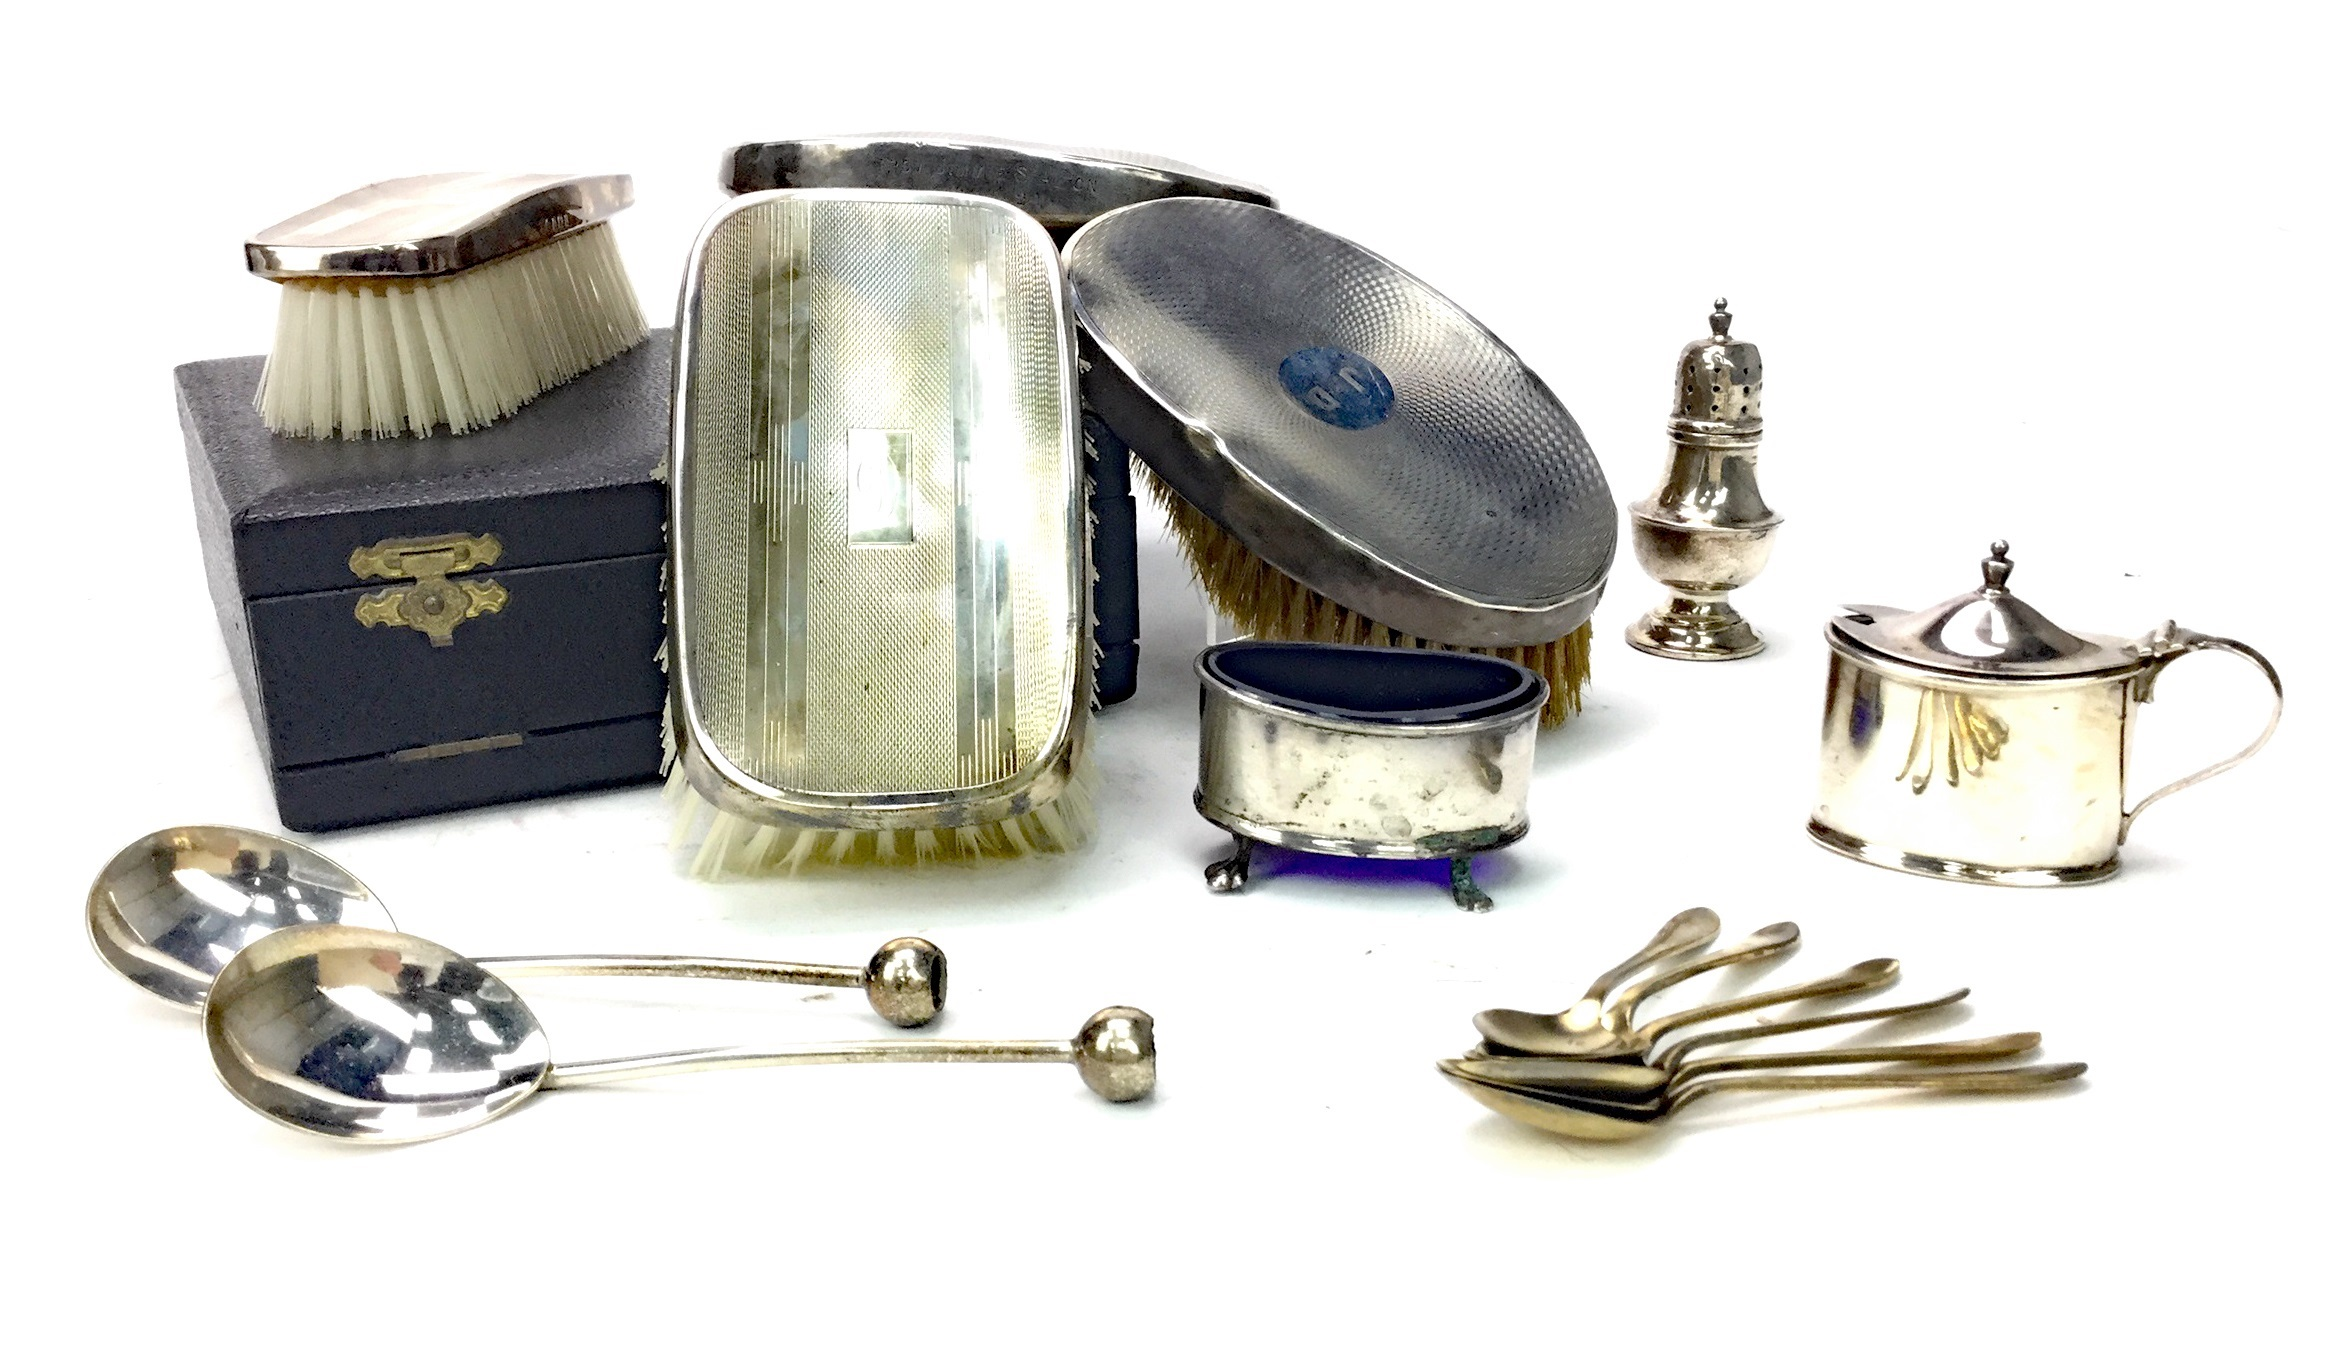 Lot 842 - SILVER BRUSH SET, BRUSHES AND CONDIMENTS